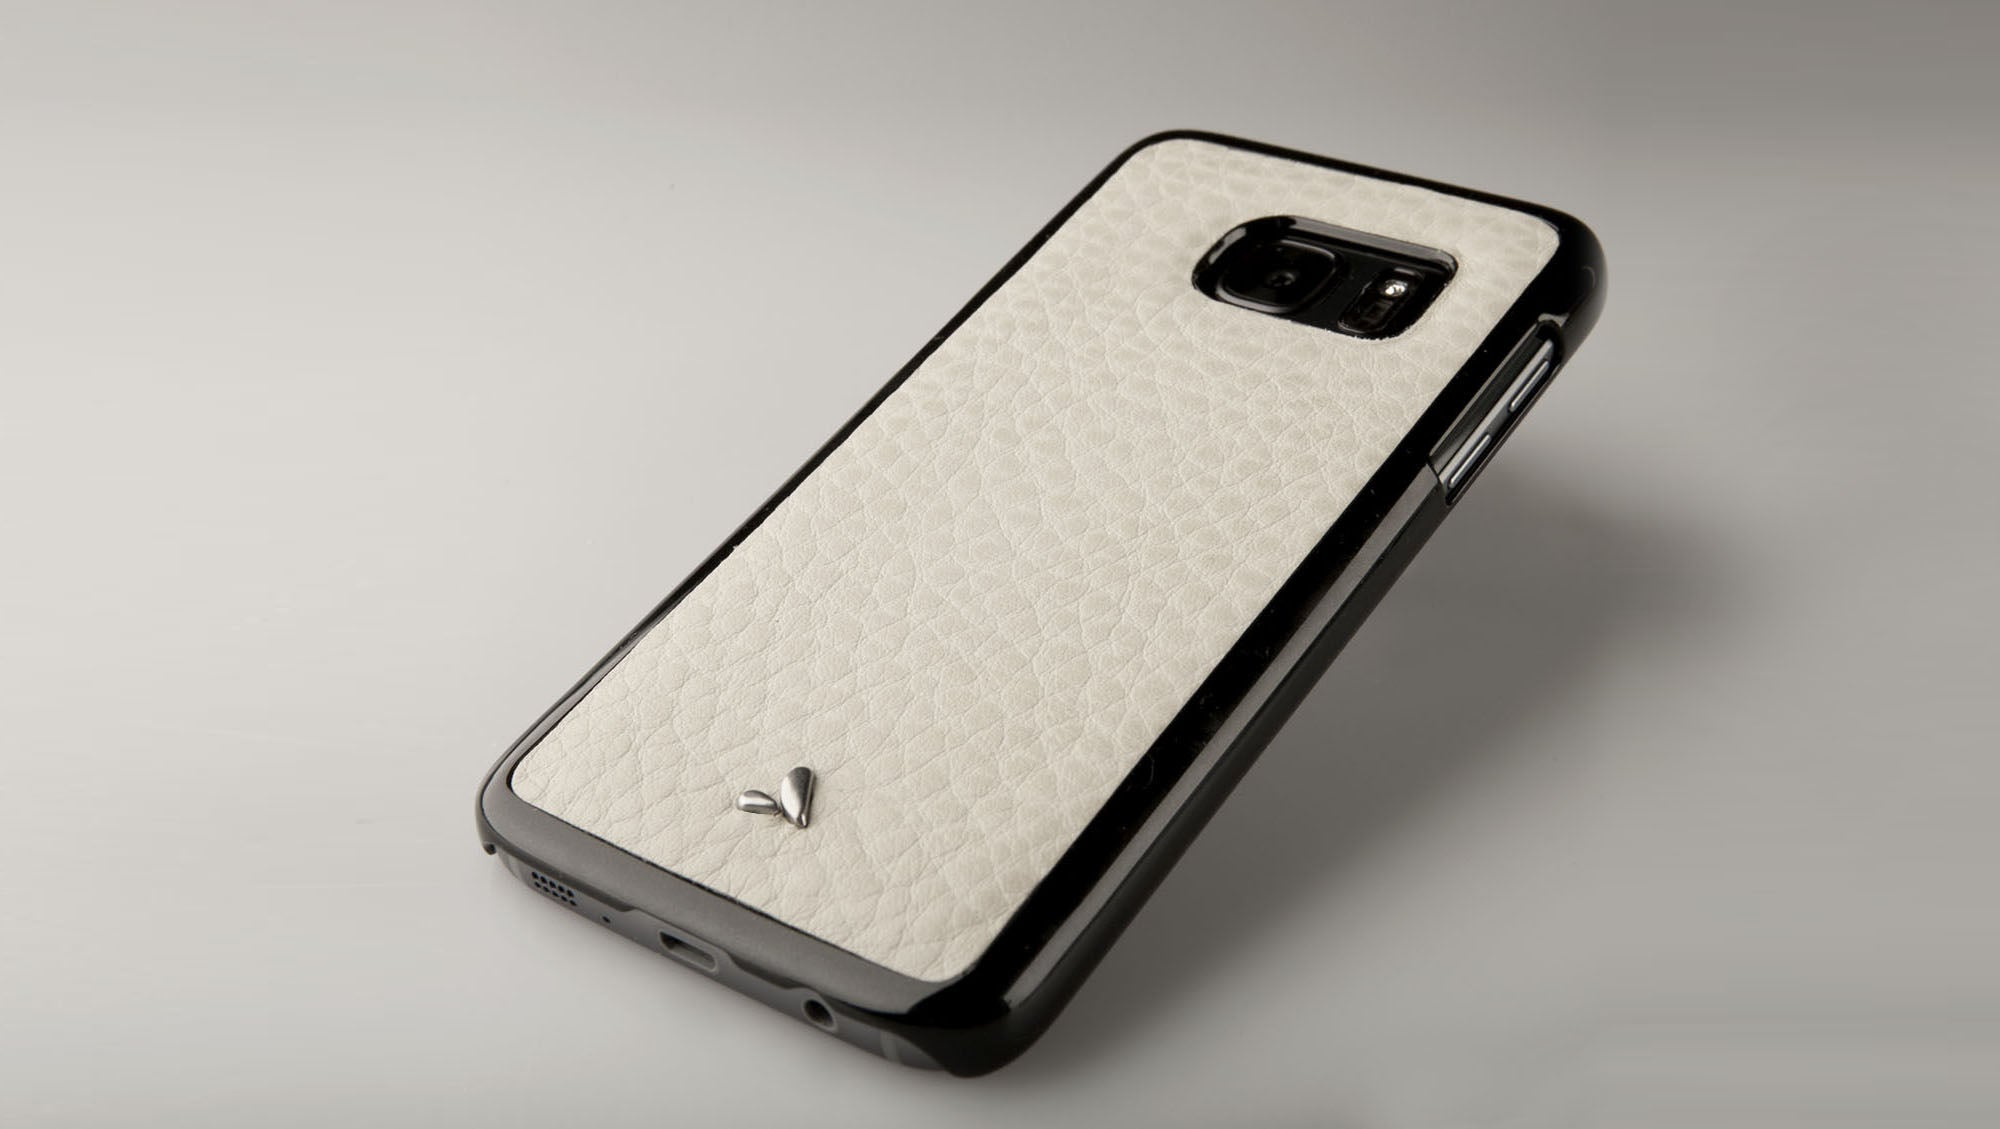 Samsung Galaxy S7 Leather Grip